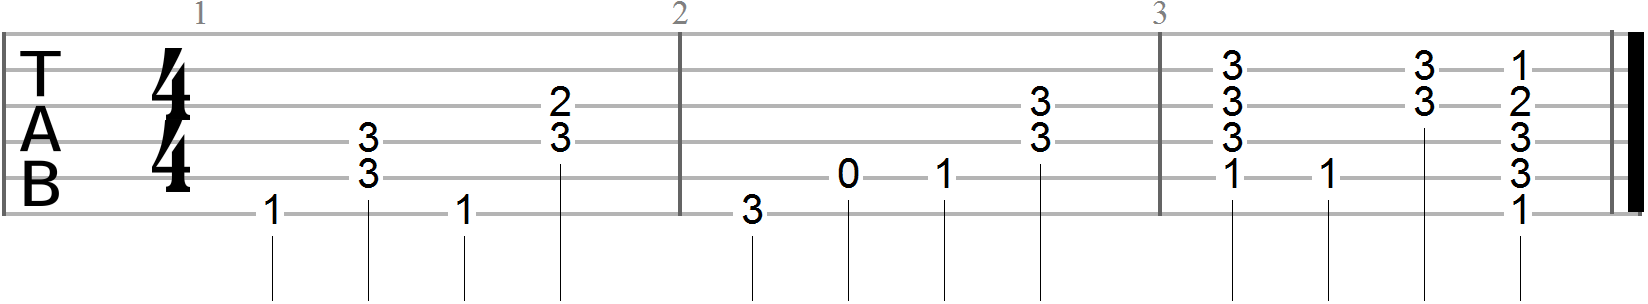 Chord Progressions Example_1